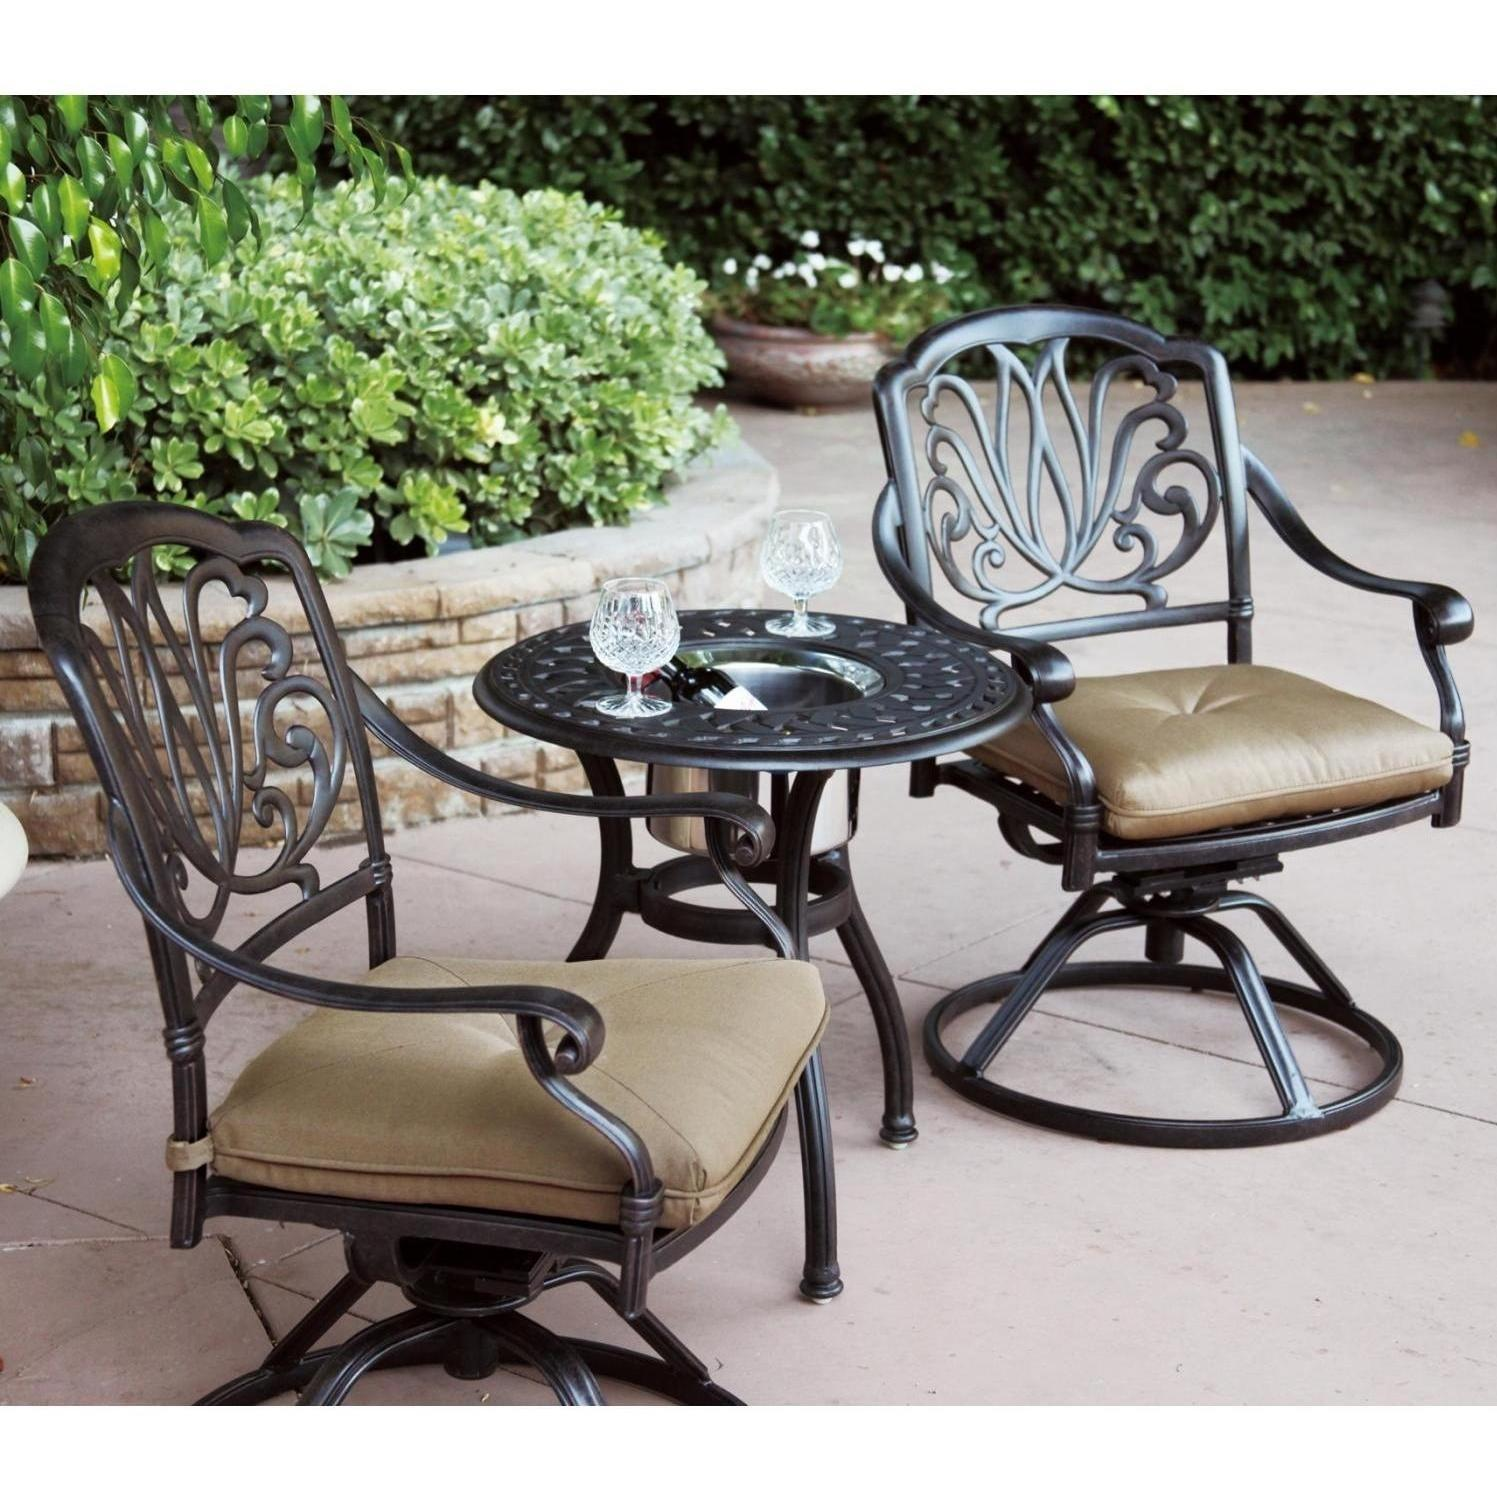 patio furniture bistro set cast aluminum swivel rocker 3pc lisse. Black Bedroom Furniture Sets. Home Design Ideas